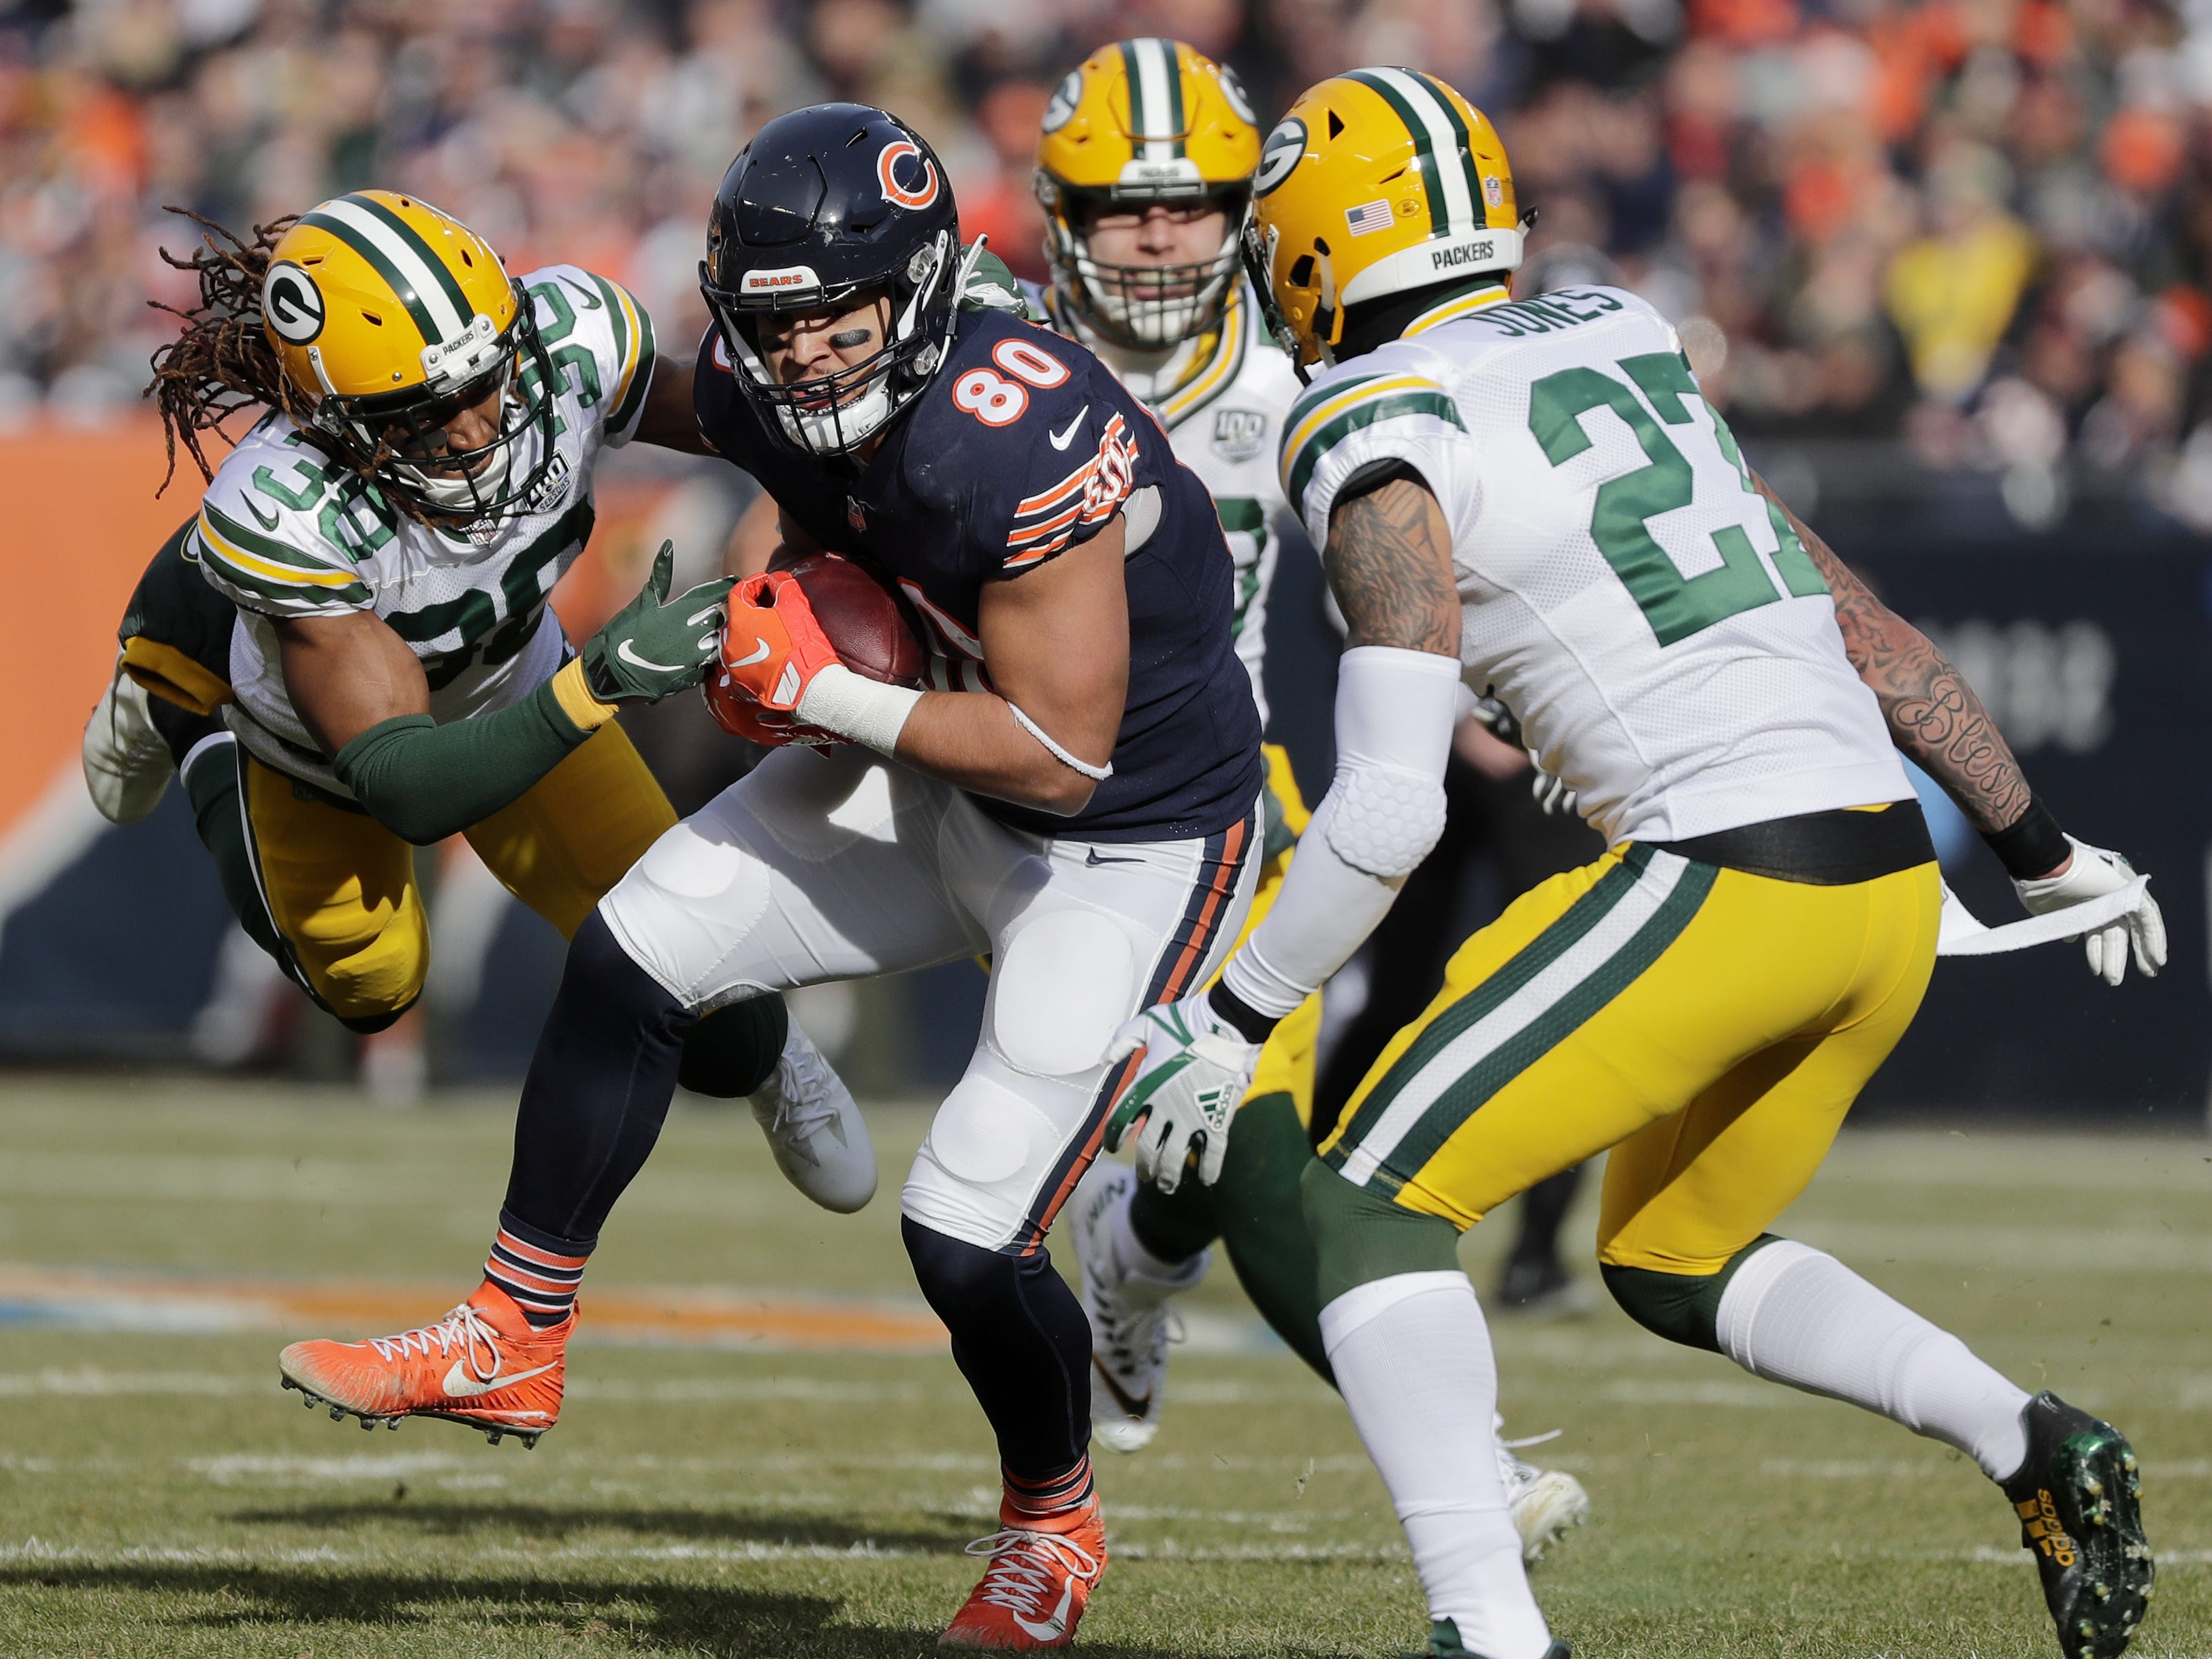 Chicago Bears tight end Trey Burton (80) runs after a catch as Green Bay Packers cornerback Tramon Williams (38) and defensive back Josh Jones (27) defend in the first quarter at Soldier Field on Sunday, December 16, 2018 in Chicago, Illinois. Adam Wesley/USA TODAY NETWORK-Wis